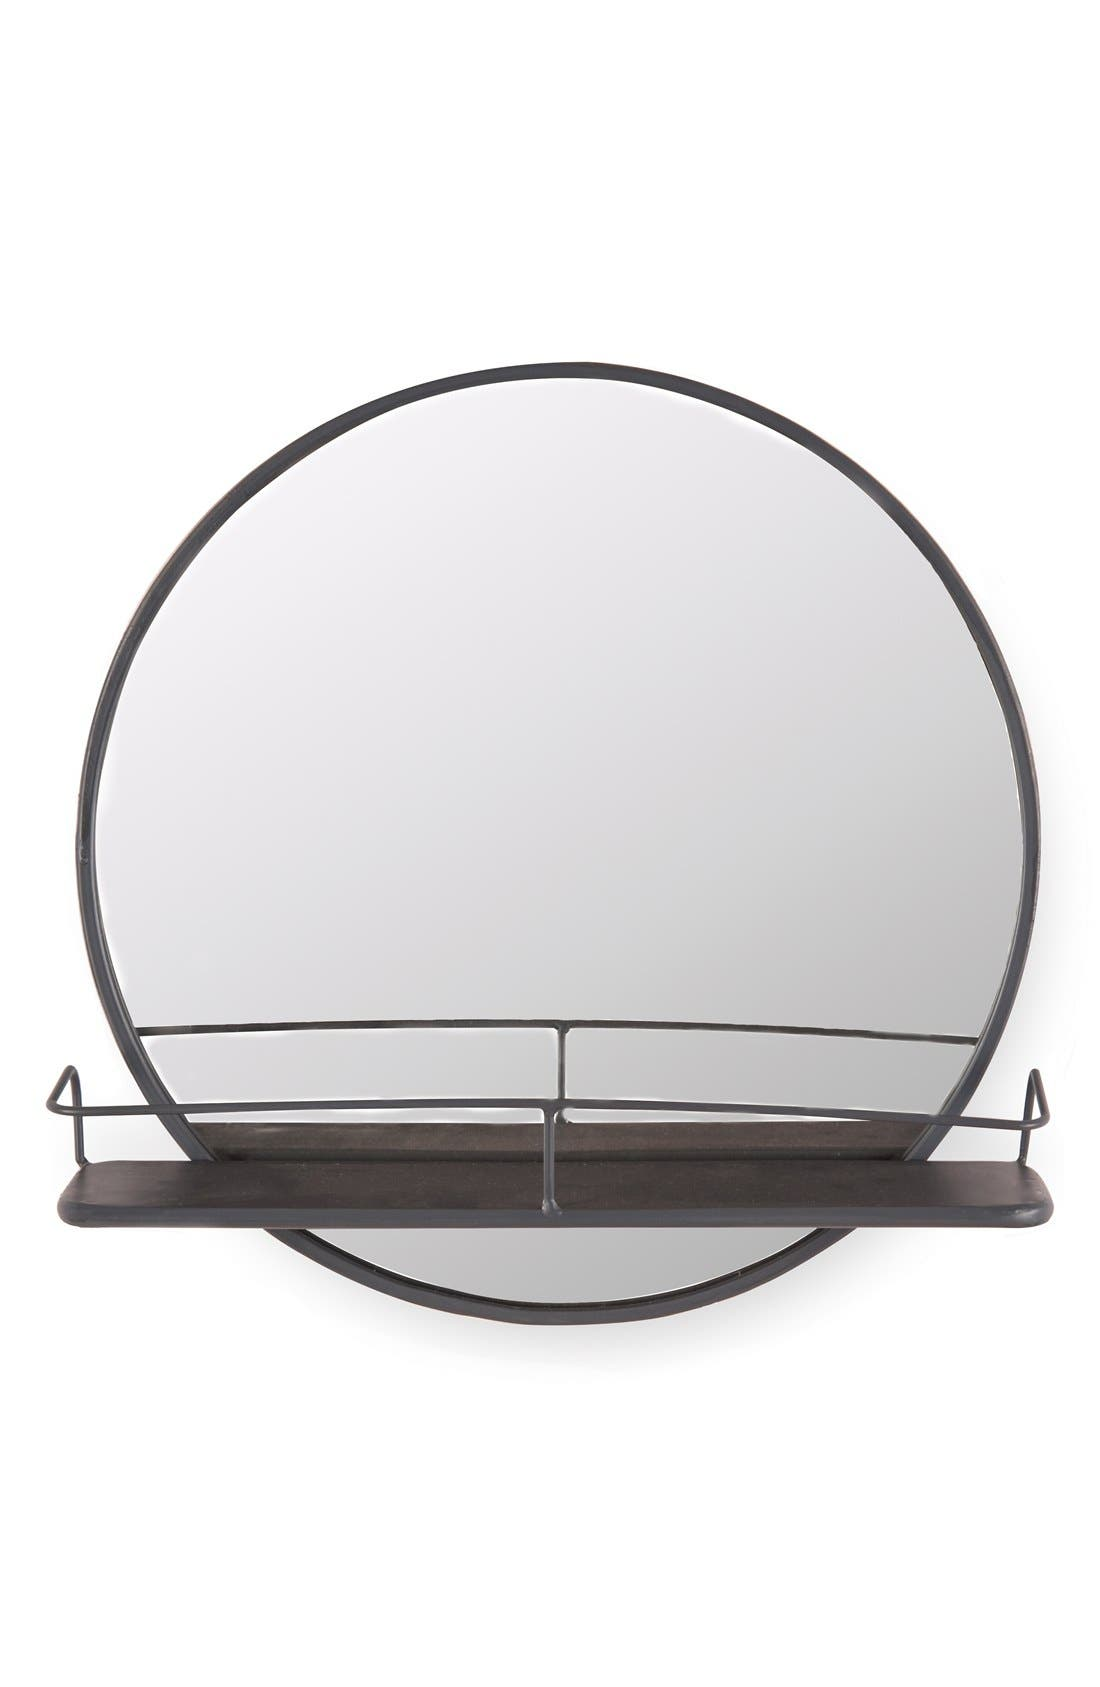 Alternate Image 1 Selected - Foreside Circle Shelf Mirror